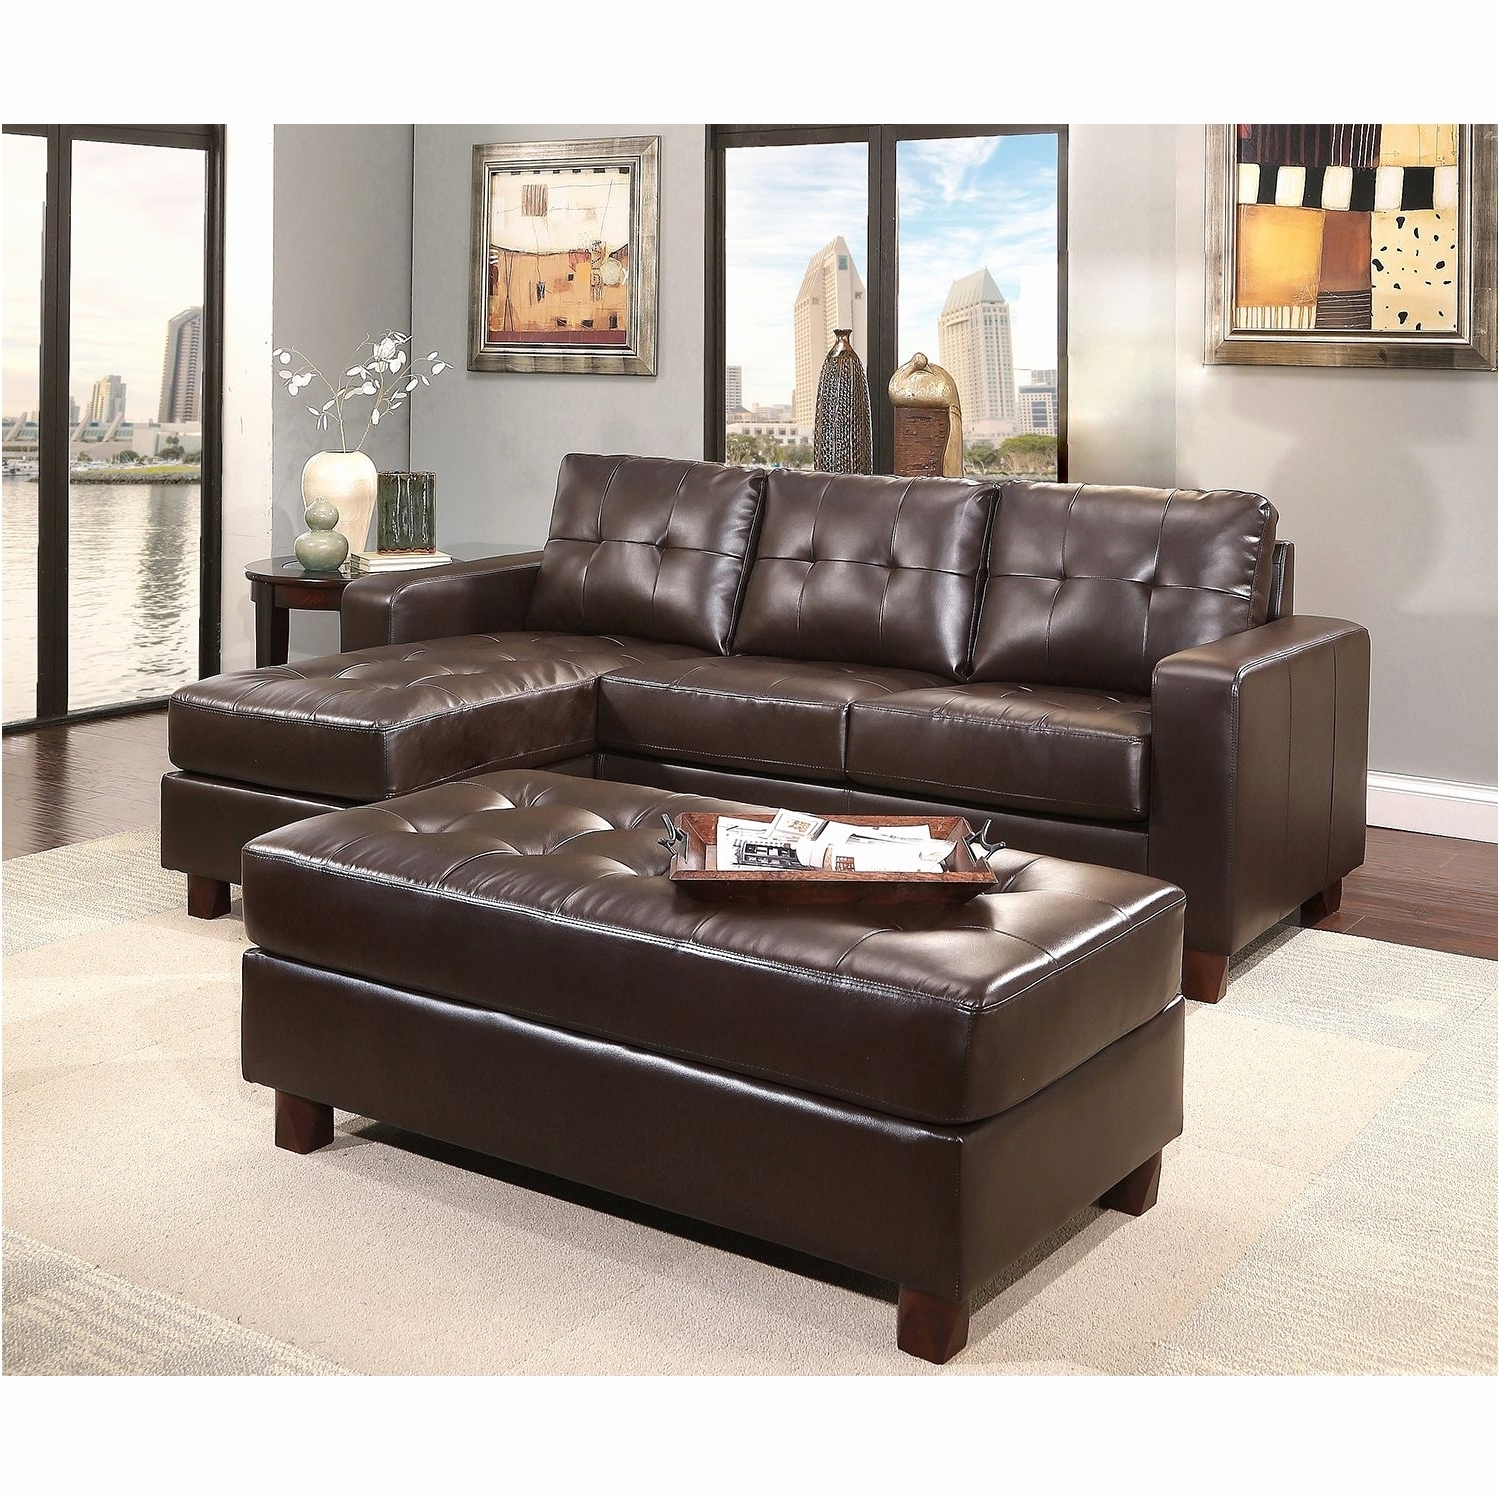 leather sofa sams club american signature sleeper 10 collection of sectional sofas at sam 39s ideas